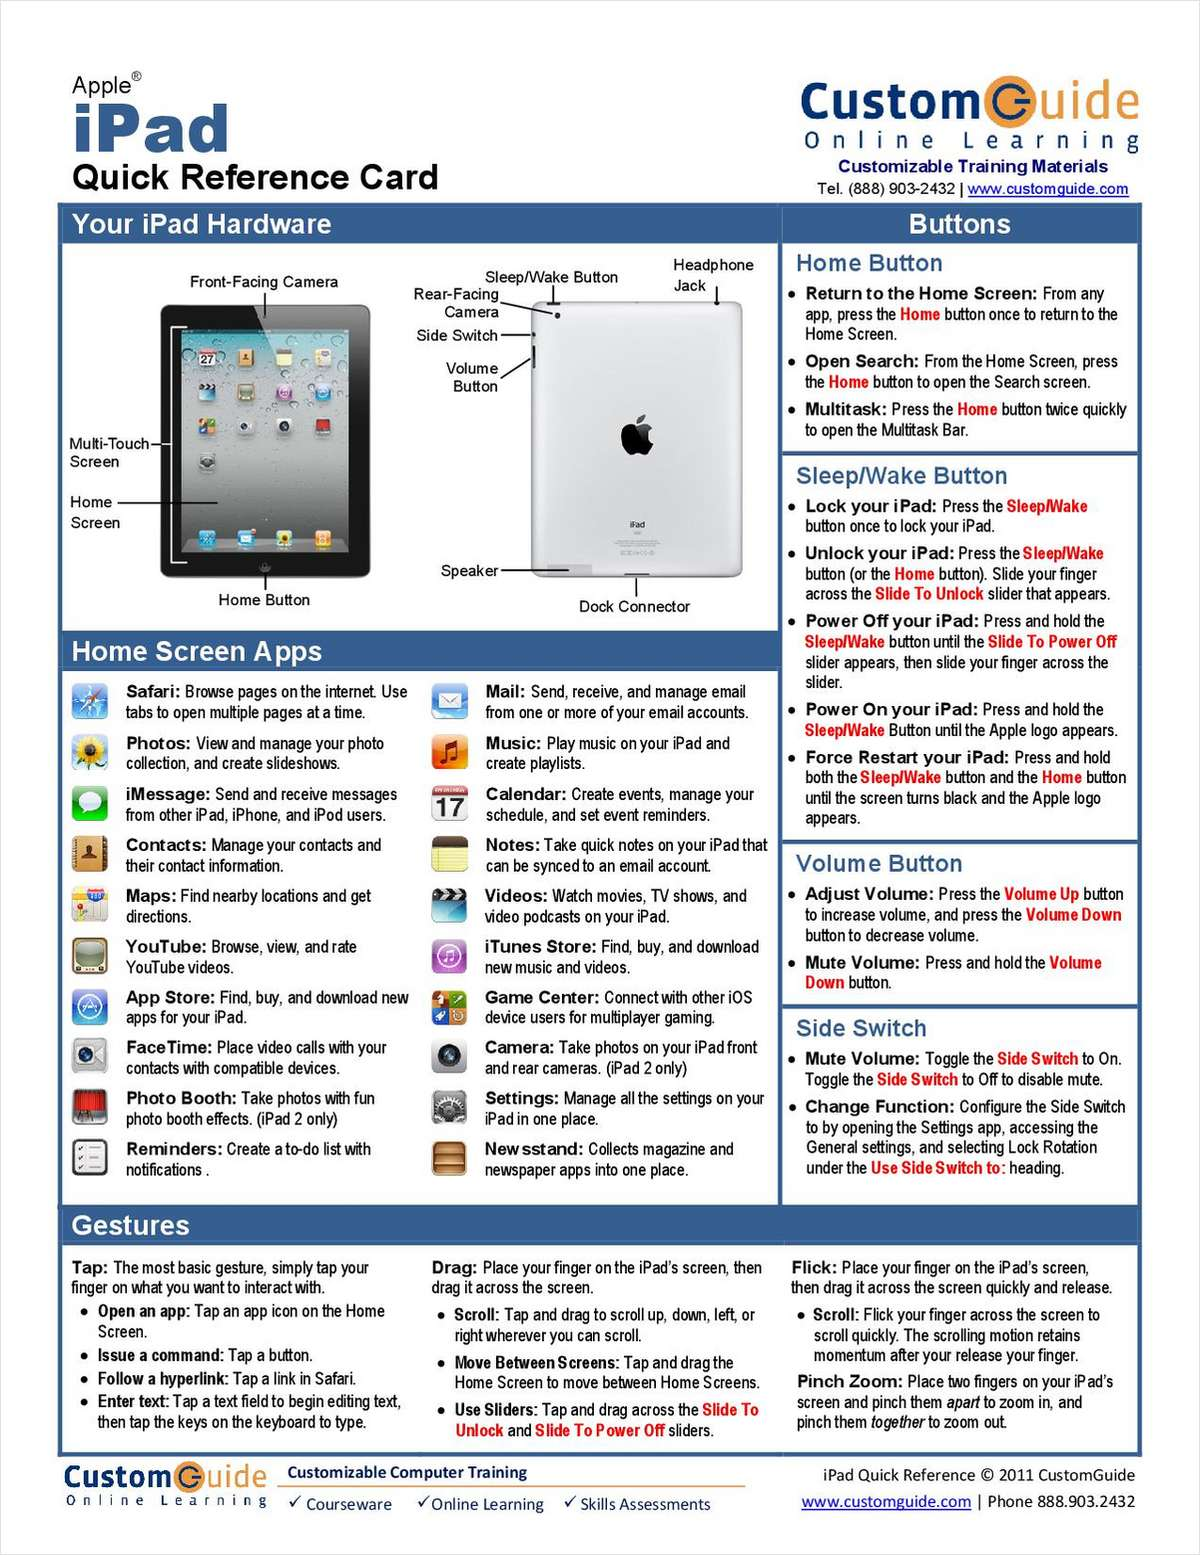 Apple iPad - Free Quick Reference Card